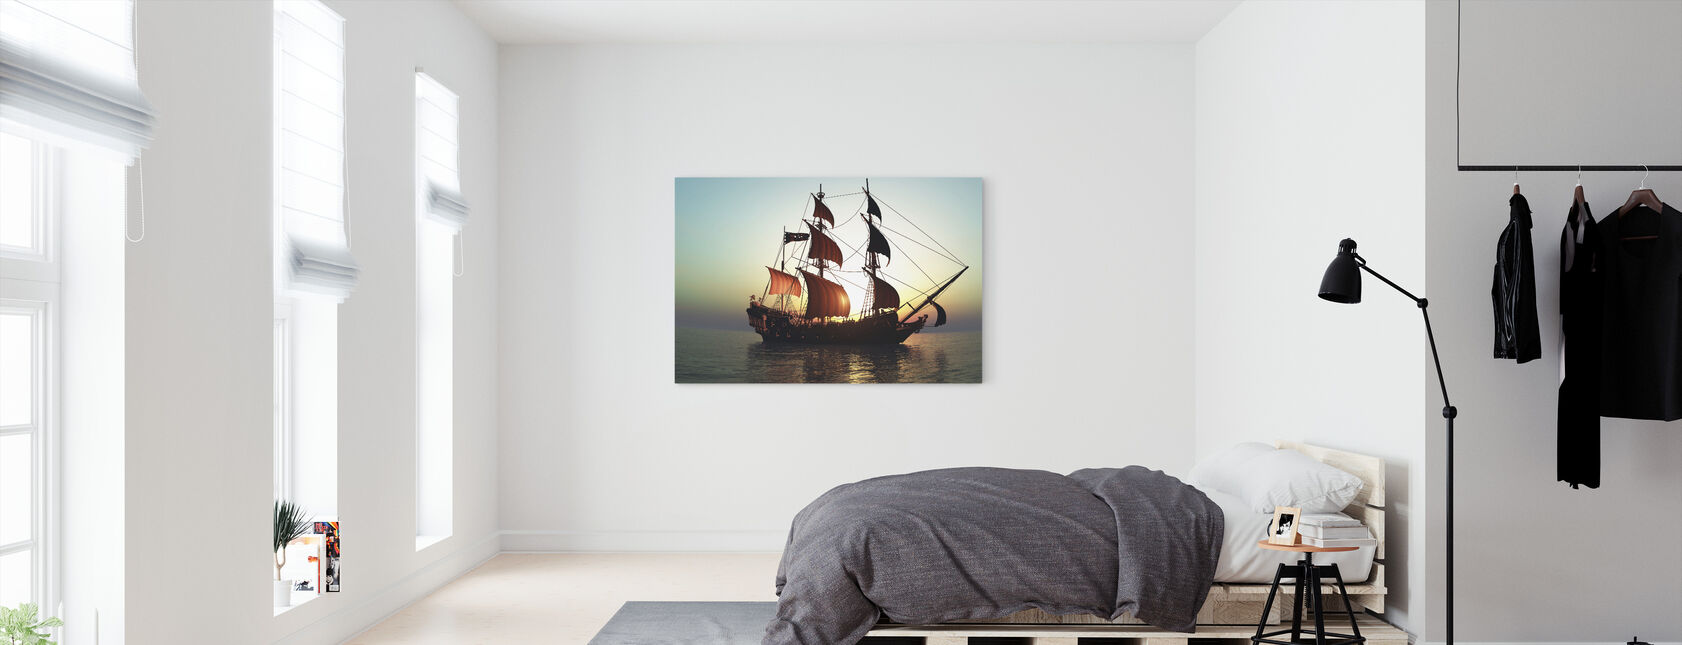 Pacific Sailing Ship - Canvas print - Bedroom